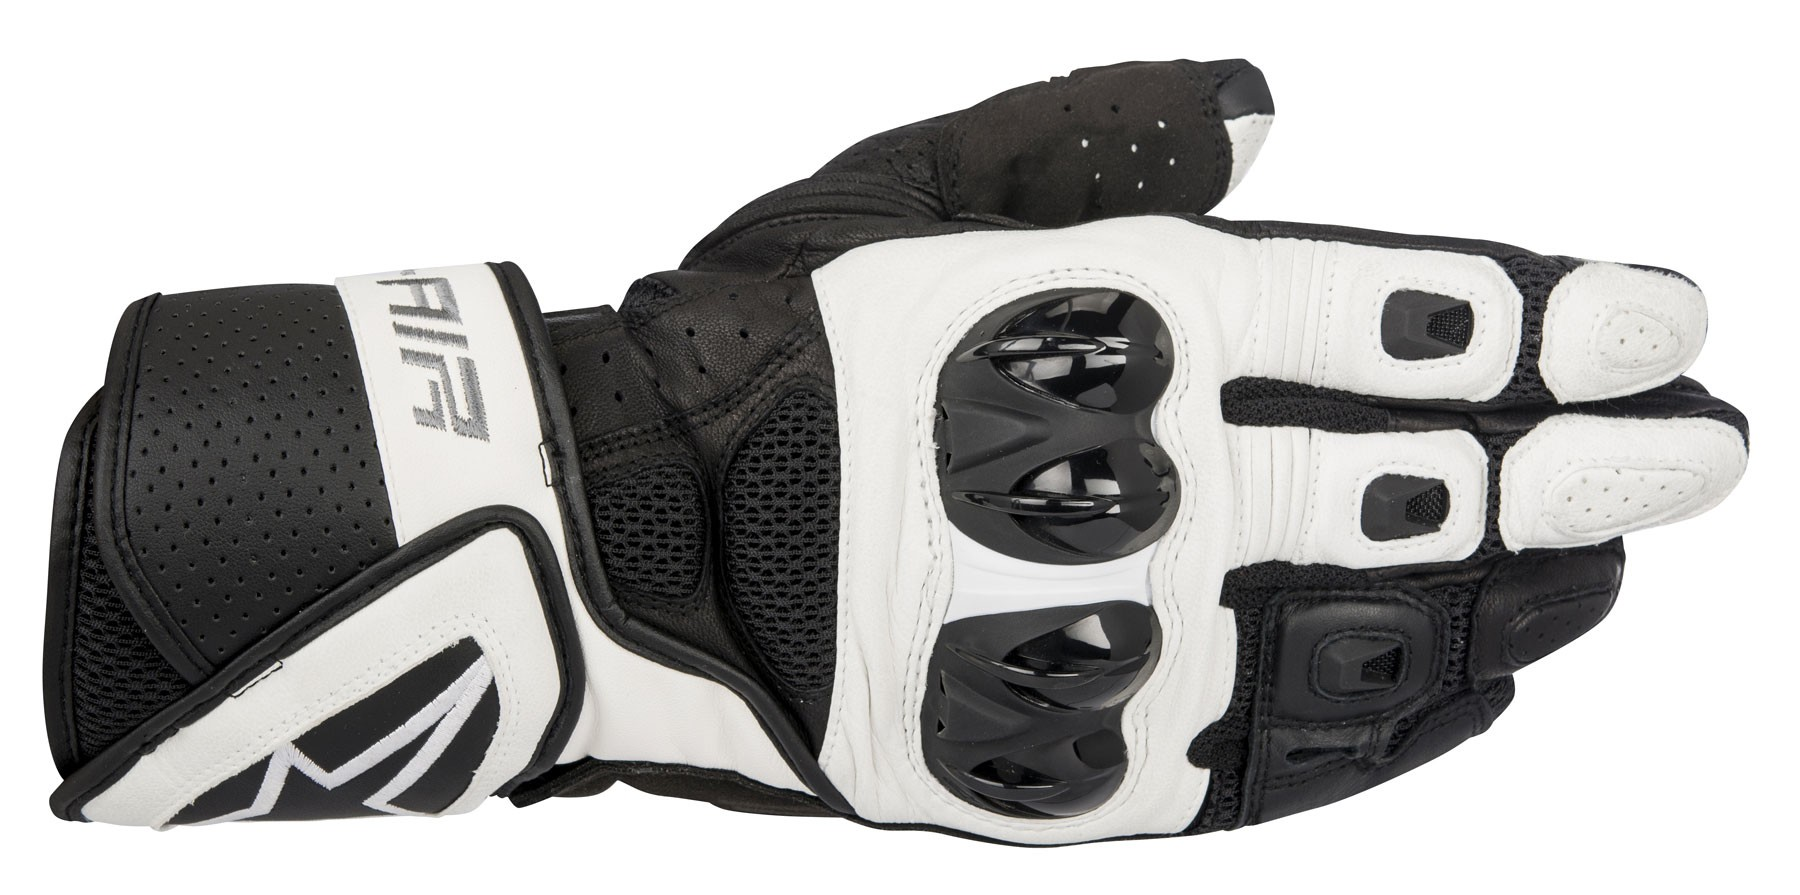 Motorcycle gloves mesh - Alpinestars 2016 Sp Air Leather Mesh Motorcycle Riding Gloves Black White